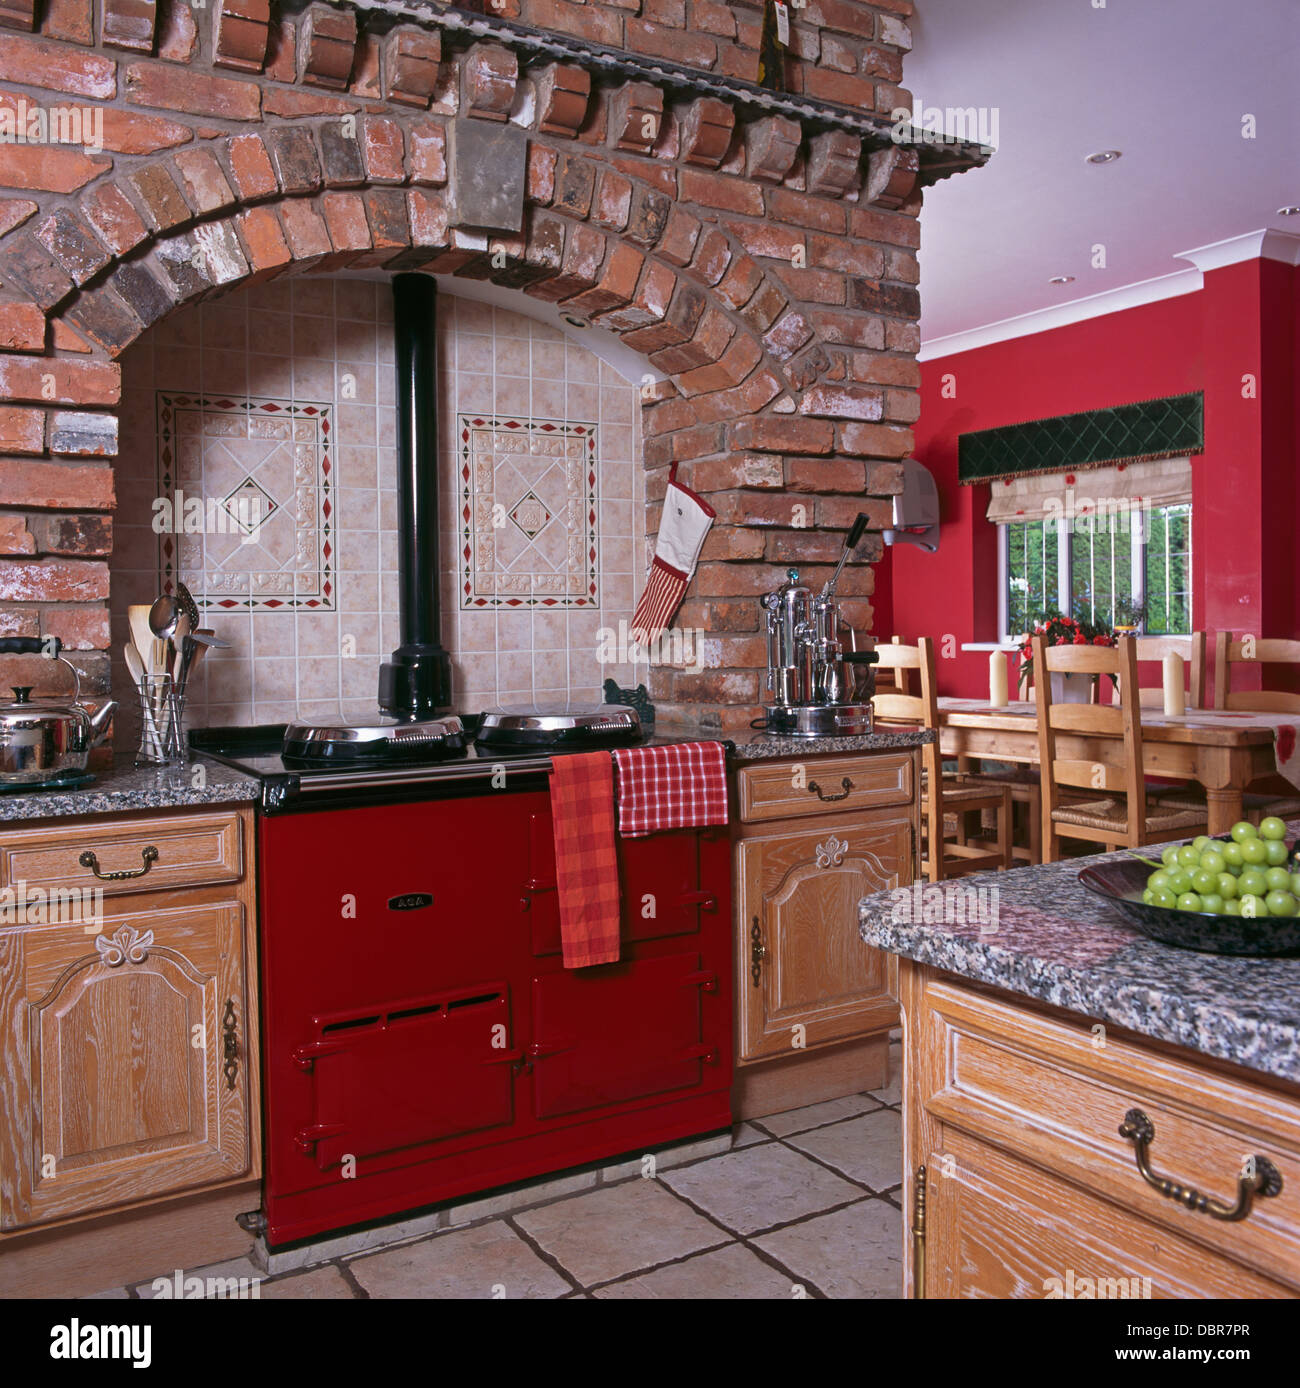 Exposed Brick Wall And Ceramic Wall Tiles Above Red Aga Oven In